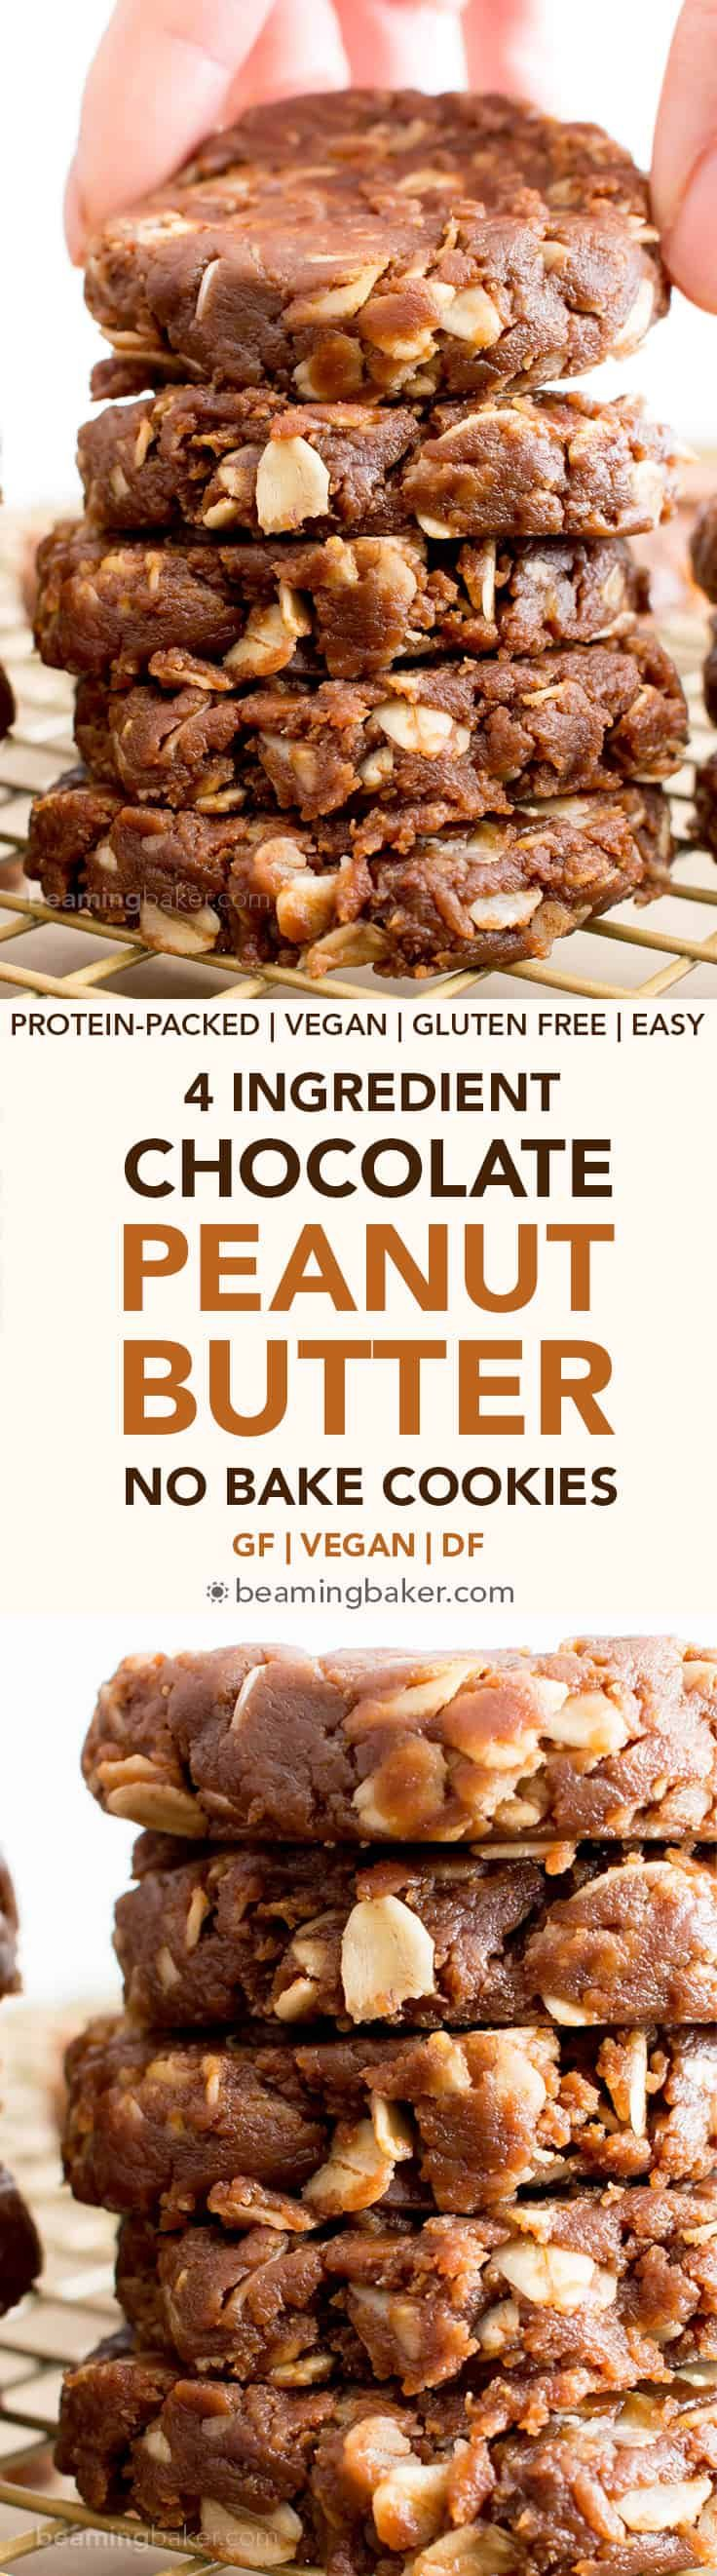 4 Ingredient No Bake Chocolate Peanut Butter #Healthy #ProteinPacked Oatmeal Cookies (V, GF, DF): an easy recipe for perfectly chewy no bake peanut butter cookies bursting with chocolate flavor. #Vegan #GlutenFree #DairyFree #Chocolate #Cookies | Recipe on BeamingBaker.com